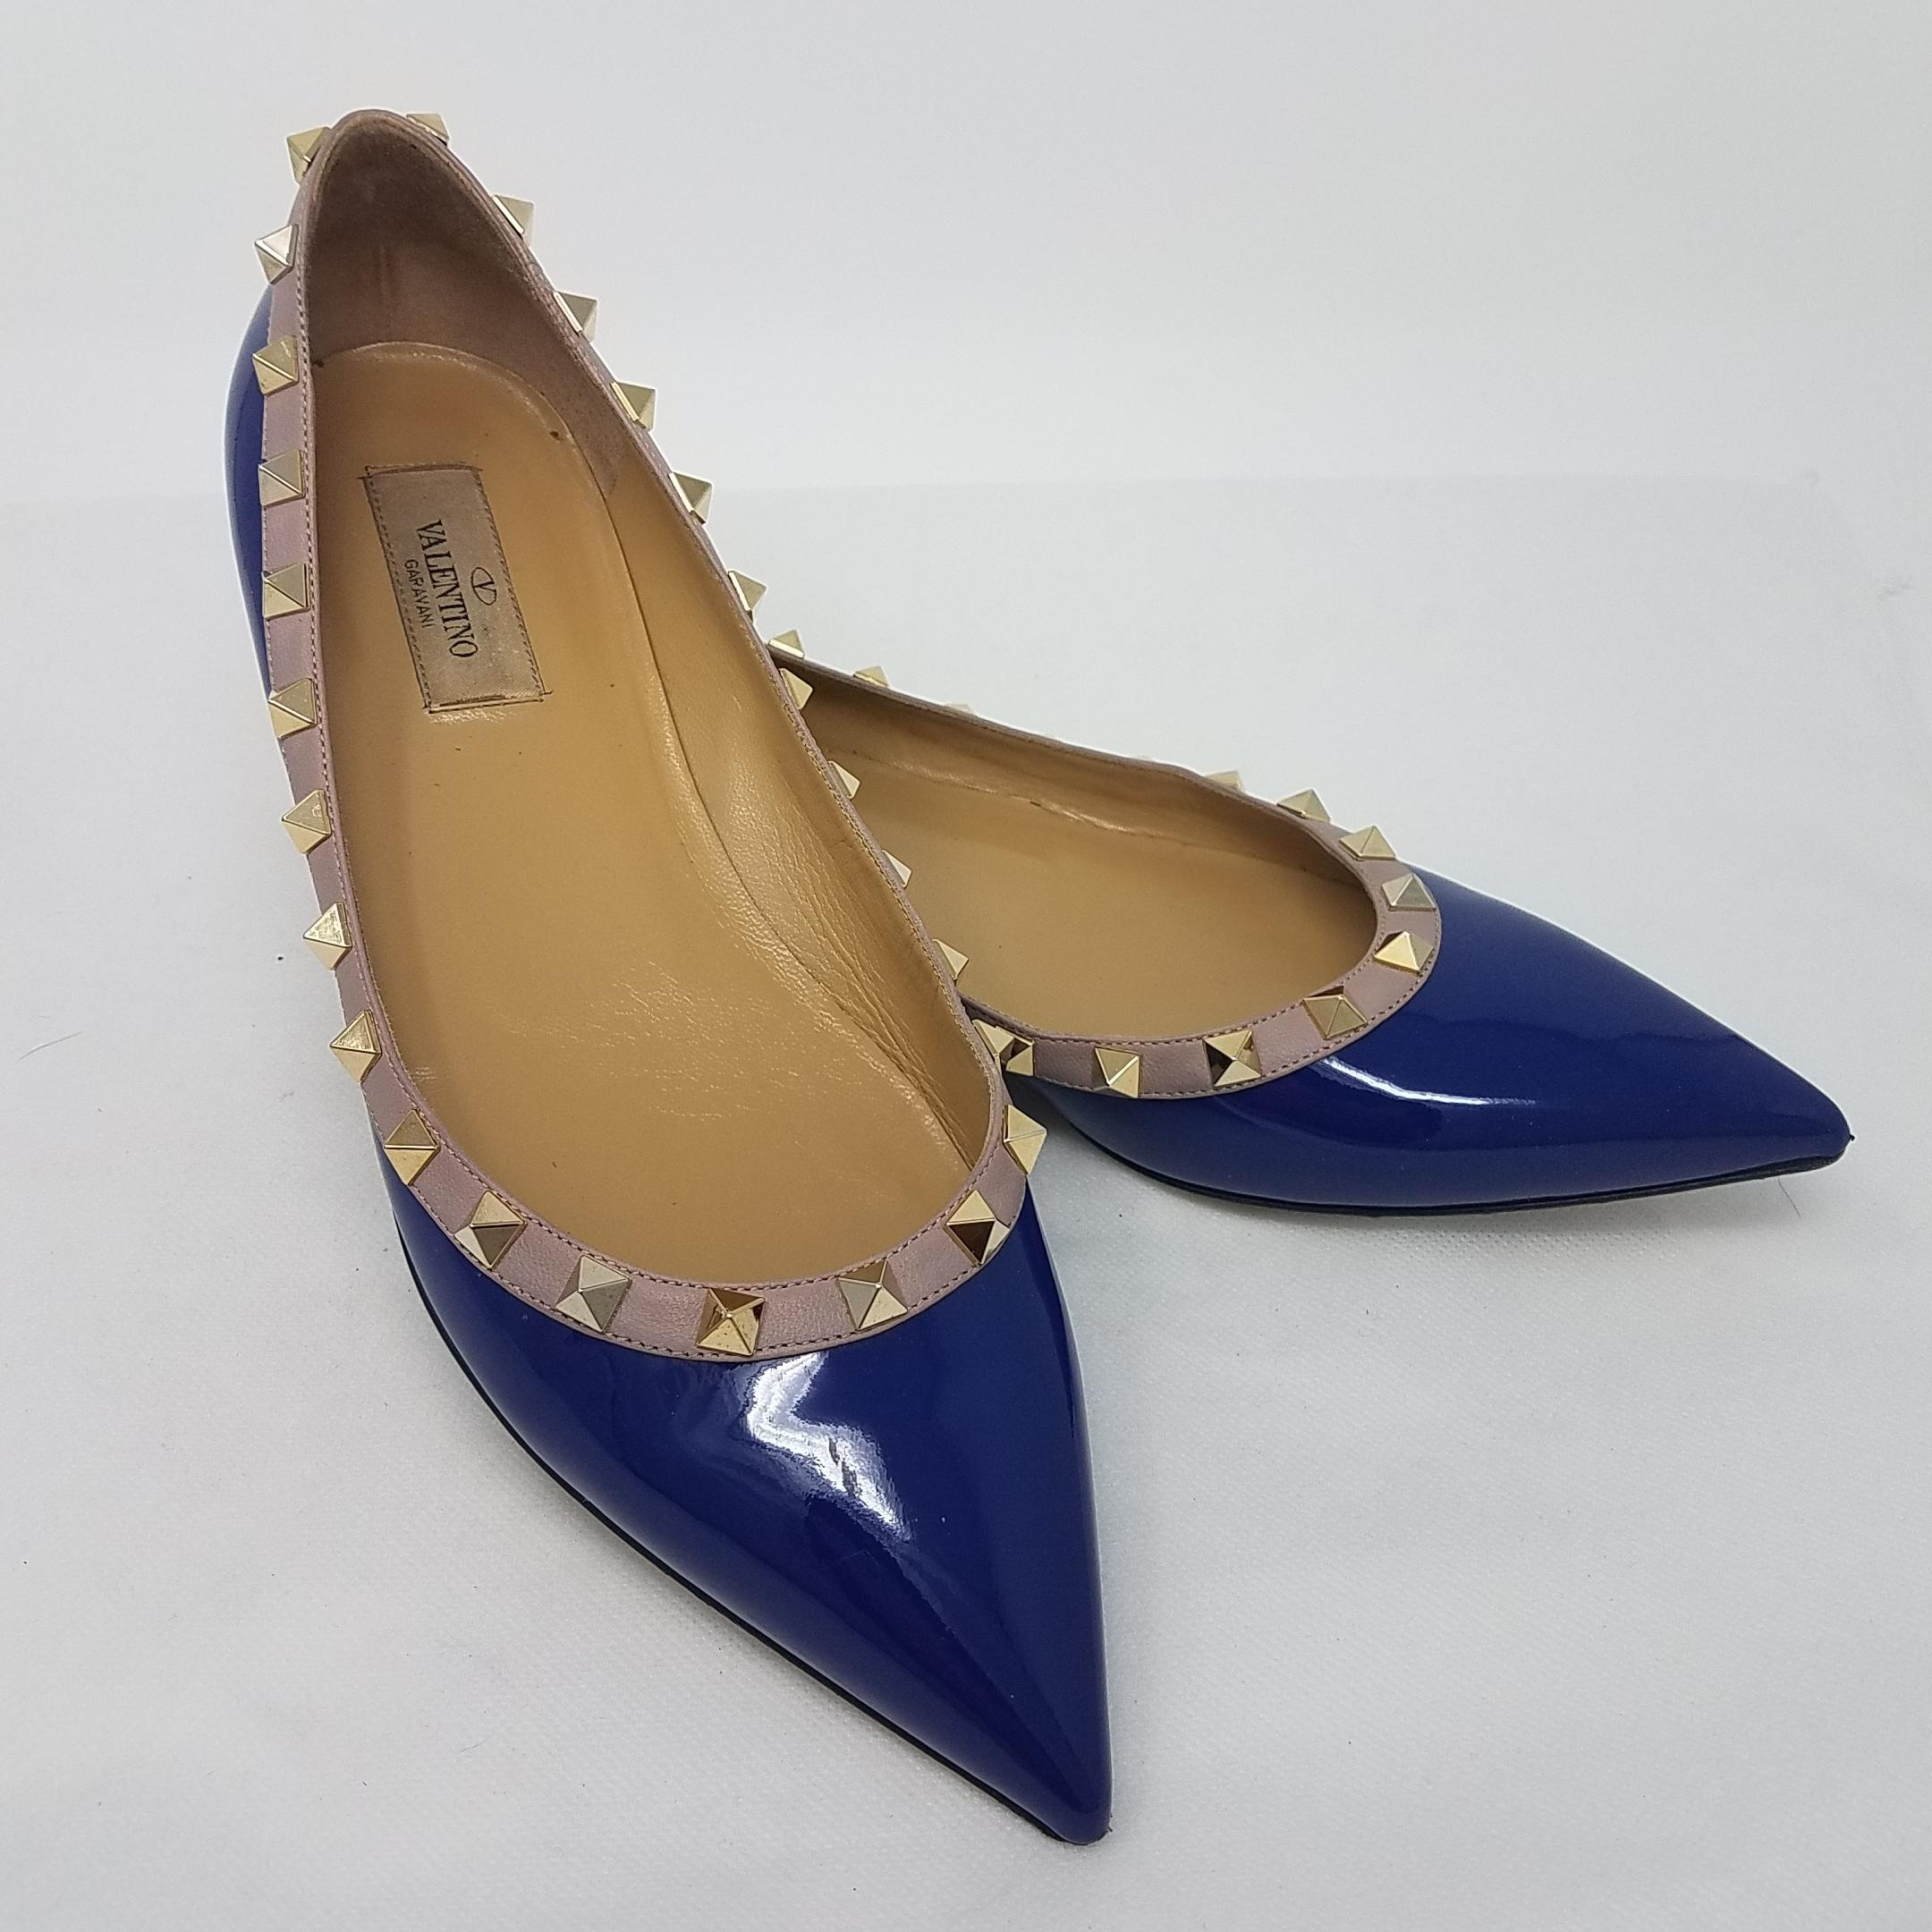 discount hot sale outlet for cheap Valentino Leather Pointed-Toe Ballet Flats discount visit new buy online authentic Gdcjq